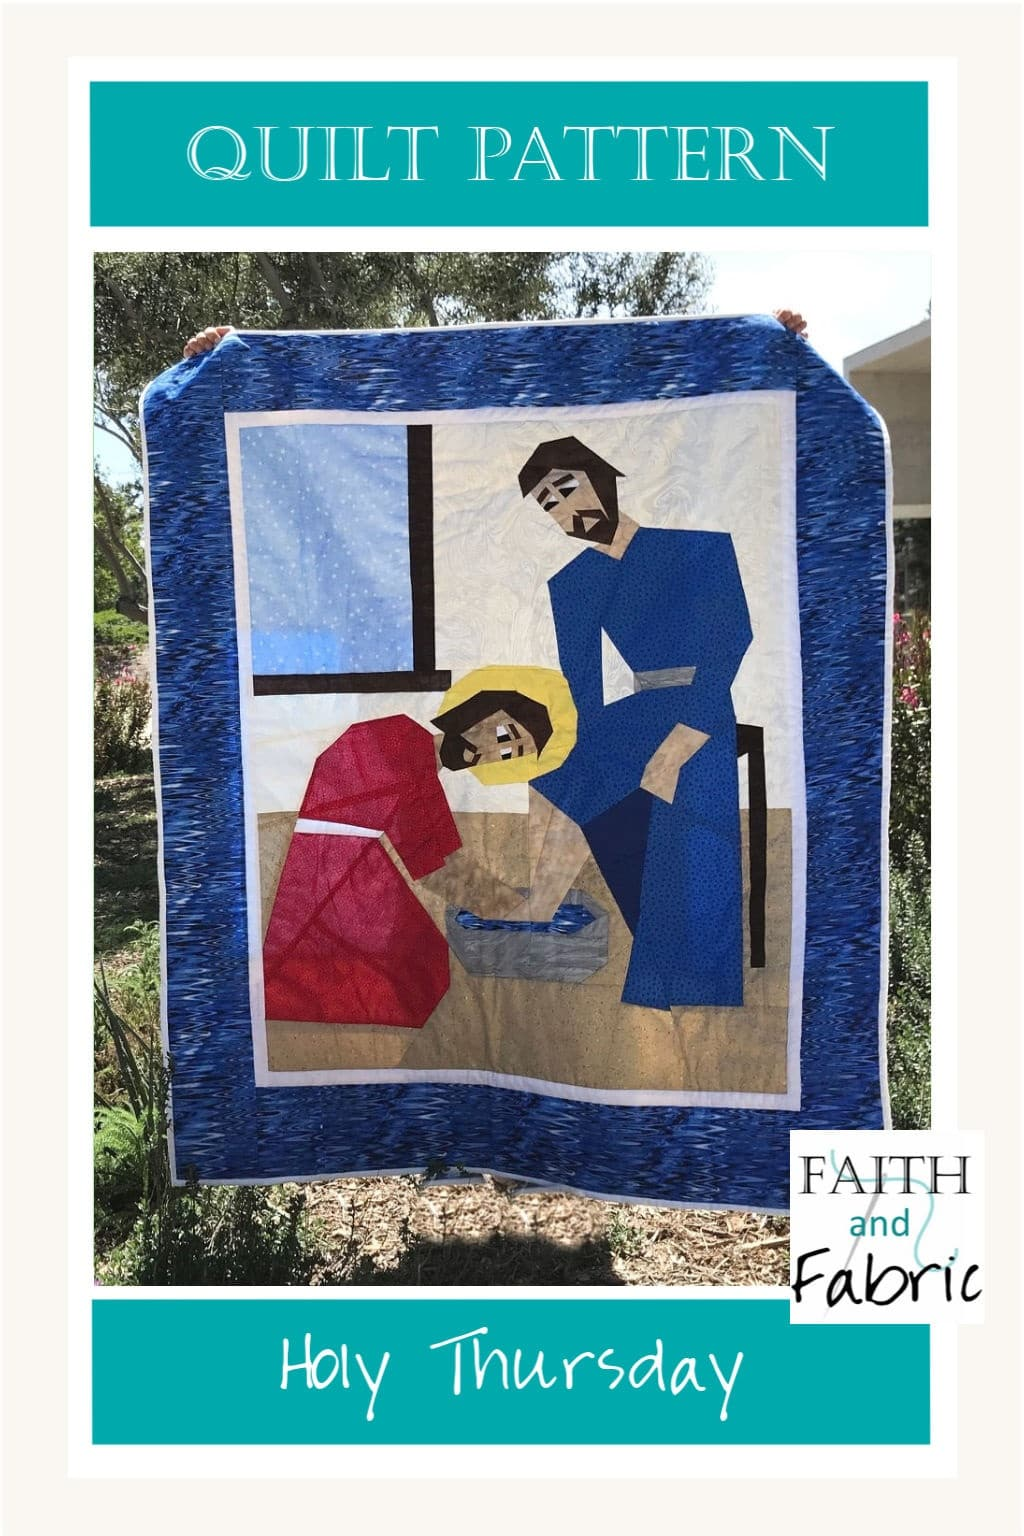 This Christian quilt pattern for Lent depicts Jesus washing Peter's feet. This Last Supper quilt pattern is foundation paper pieced, making it a great quilt for novice sewists as you just sew on the lines. Celebrate Holy Thursday with this beautiful Lent quilt pattern design!